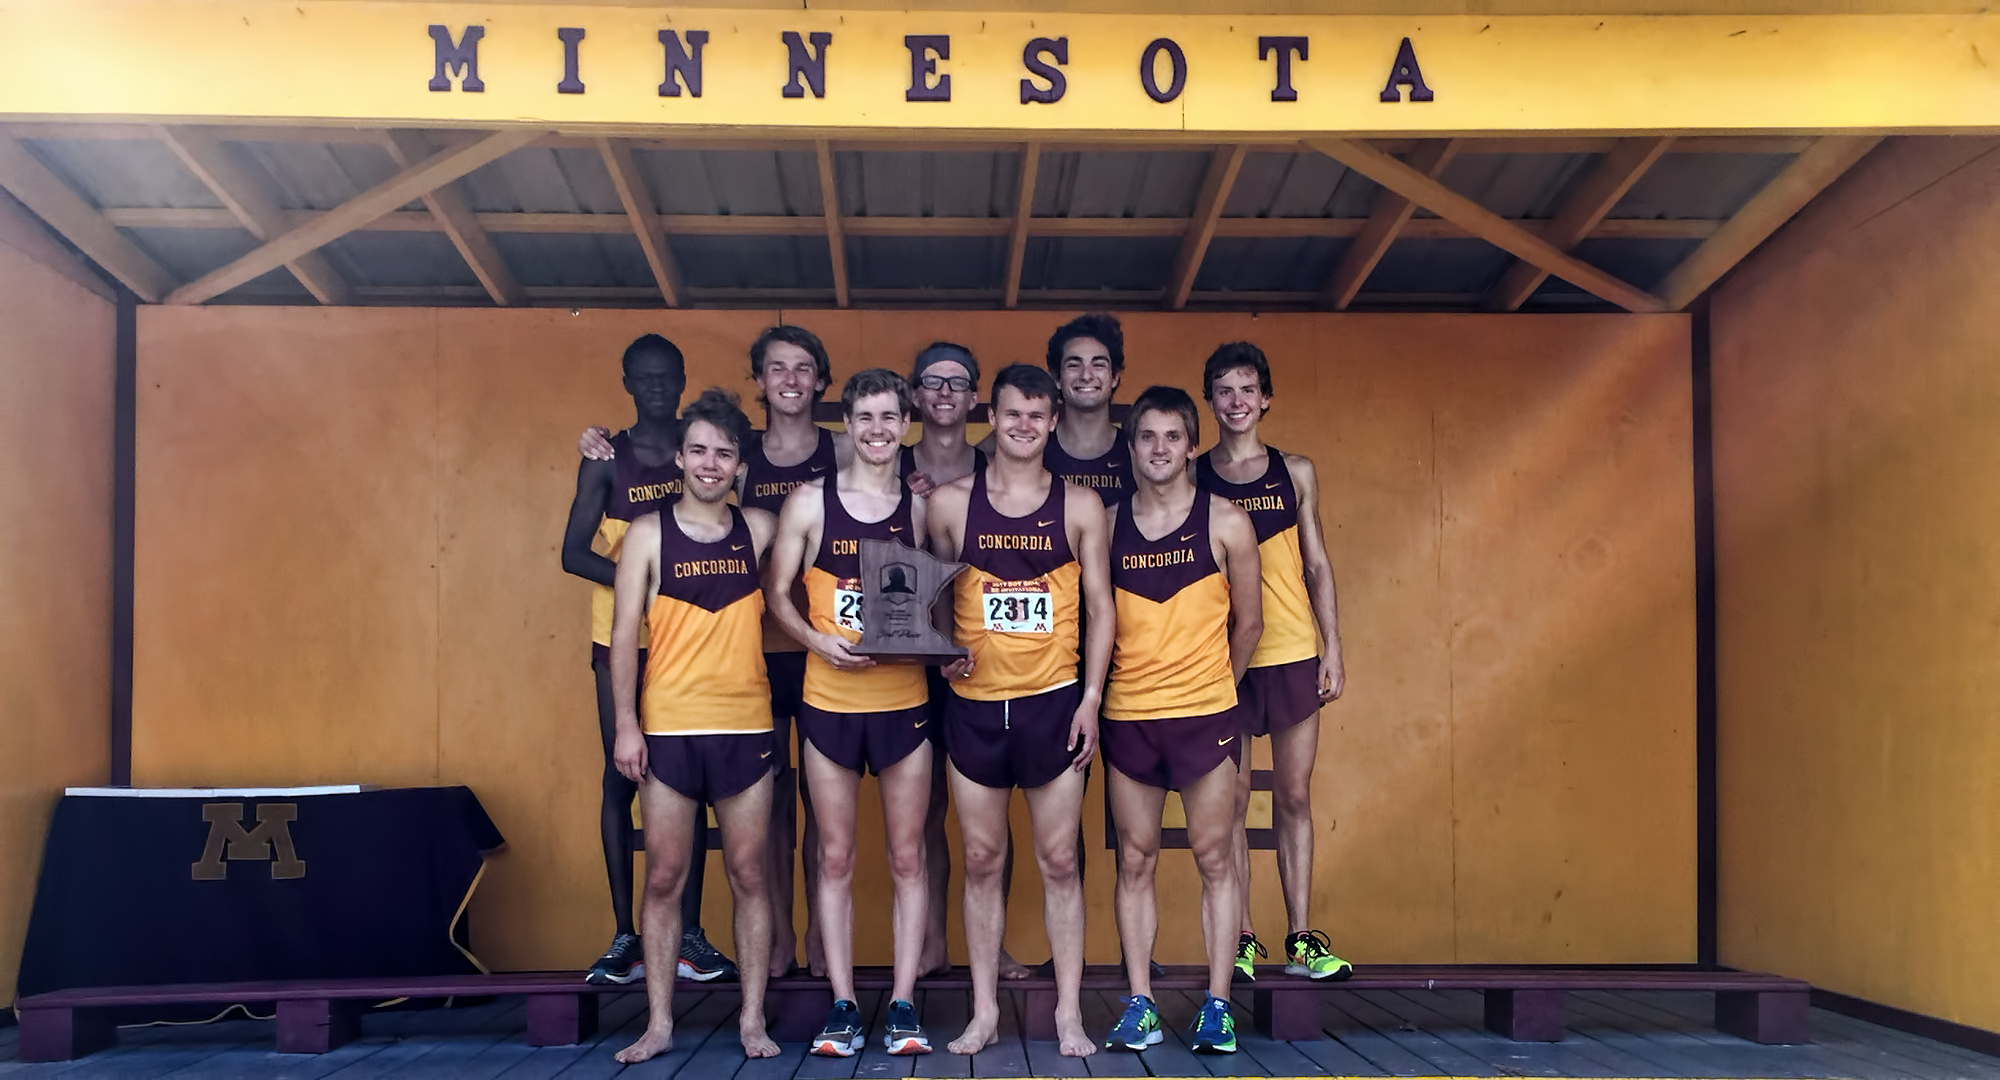 Plethora Of Positives At Roy Griak